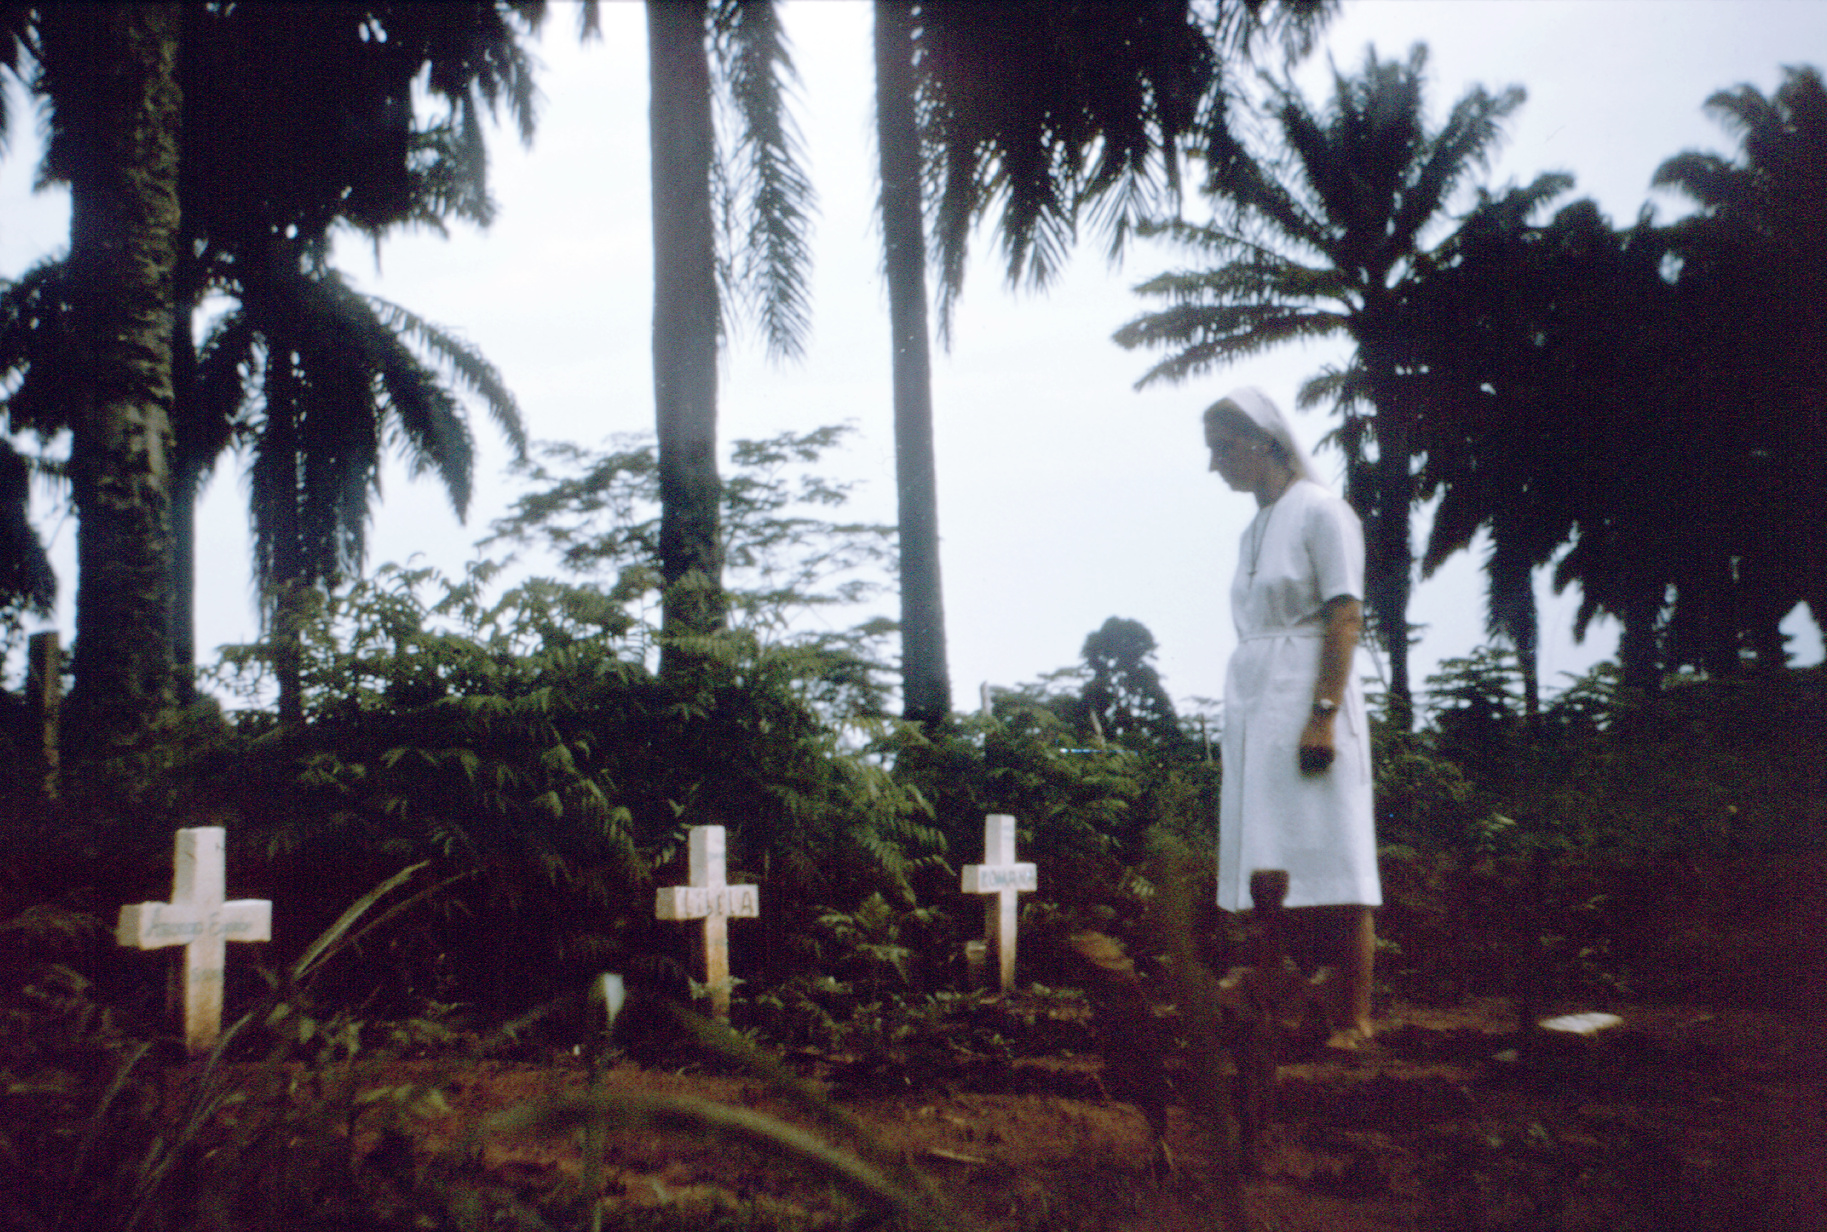 an analysis of the ebola virus in 1976 in zaire 1977 — ebola virus noted retrospectively in the village of tandala 1979 — (sudan virus) occurred in nzara, maridi recurrent outbreak at the same site as.